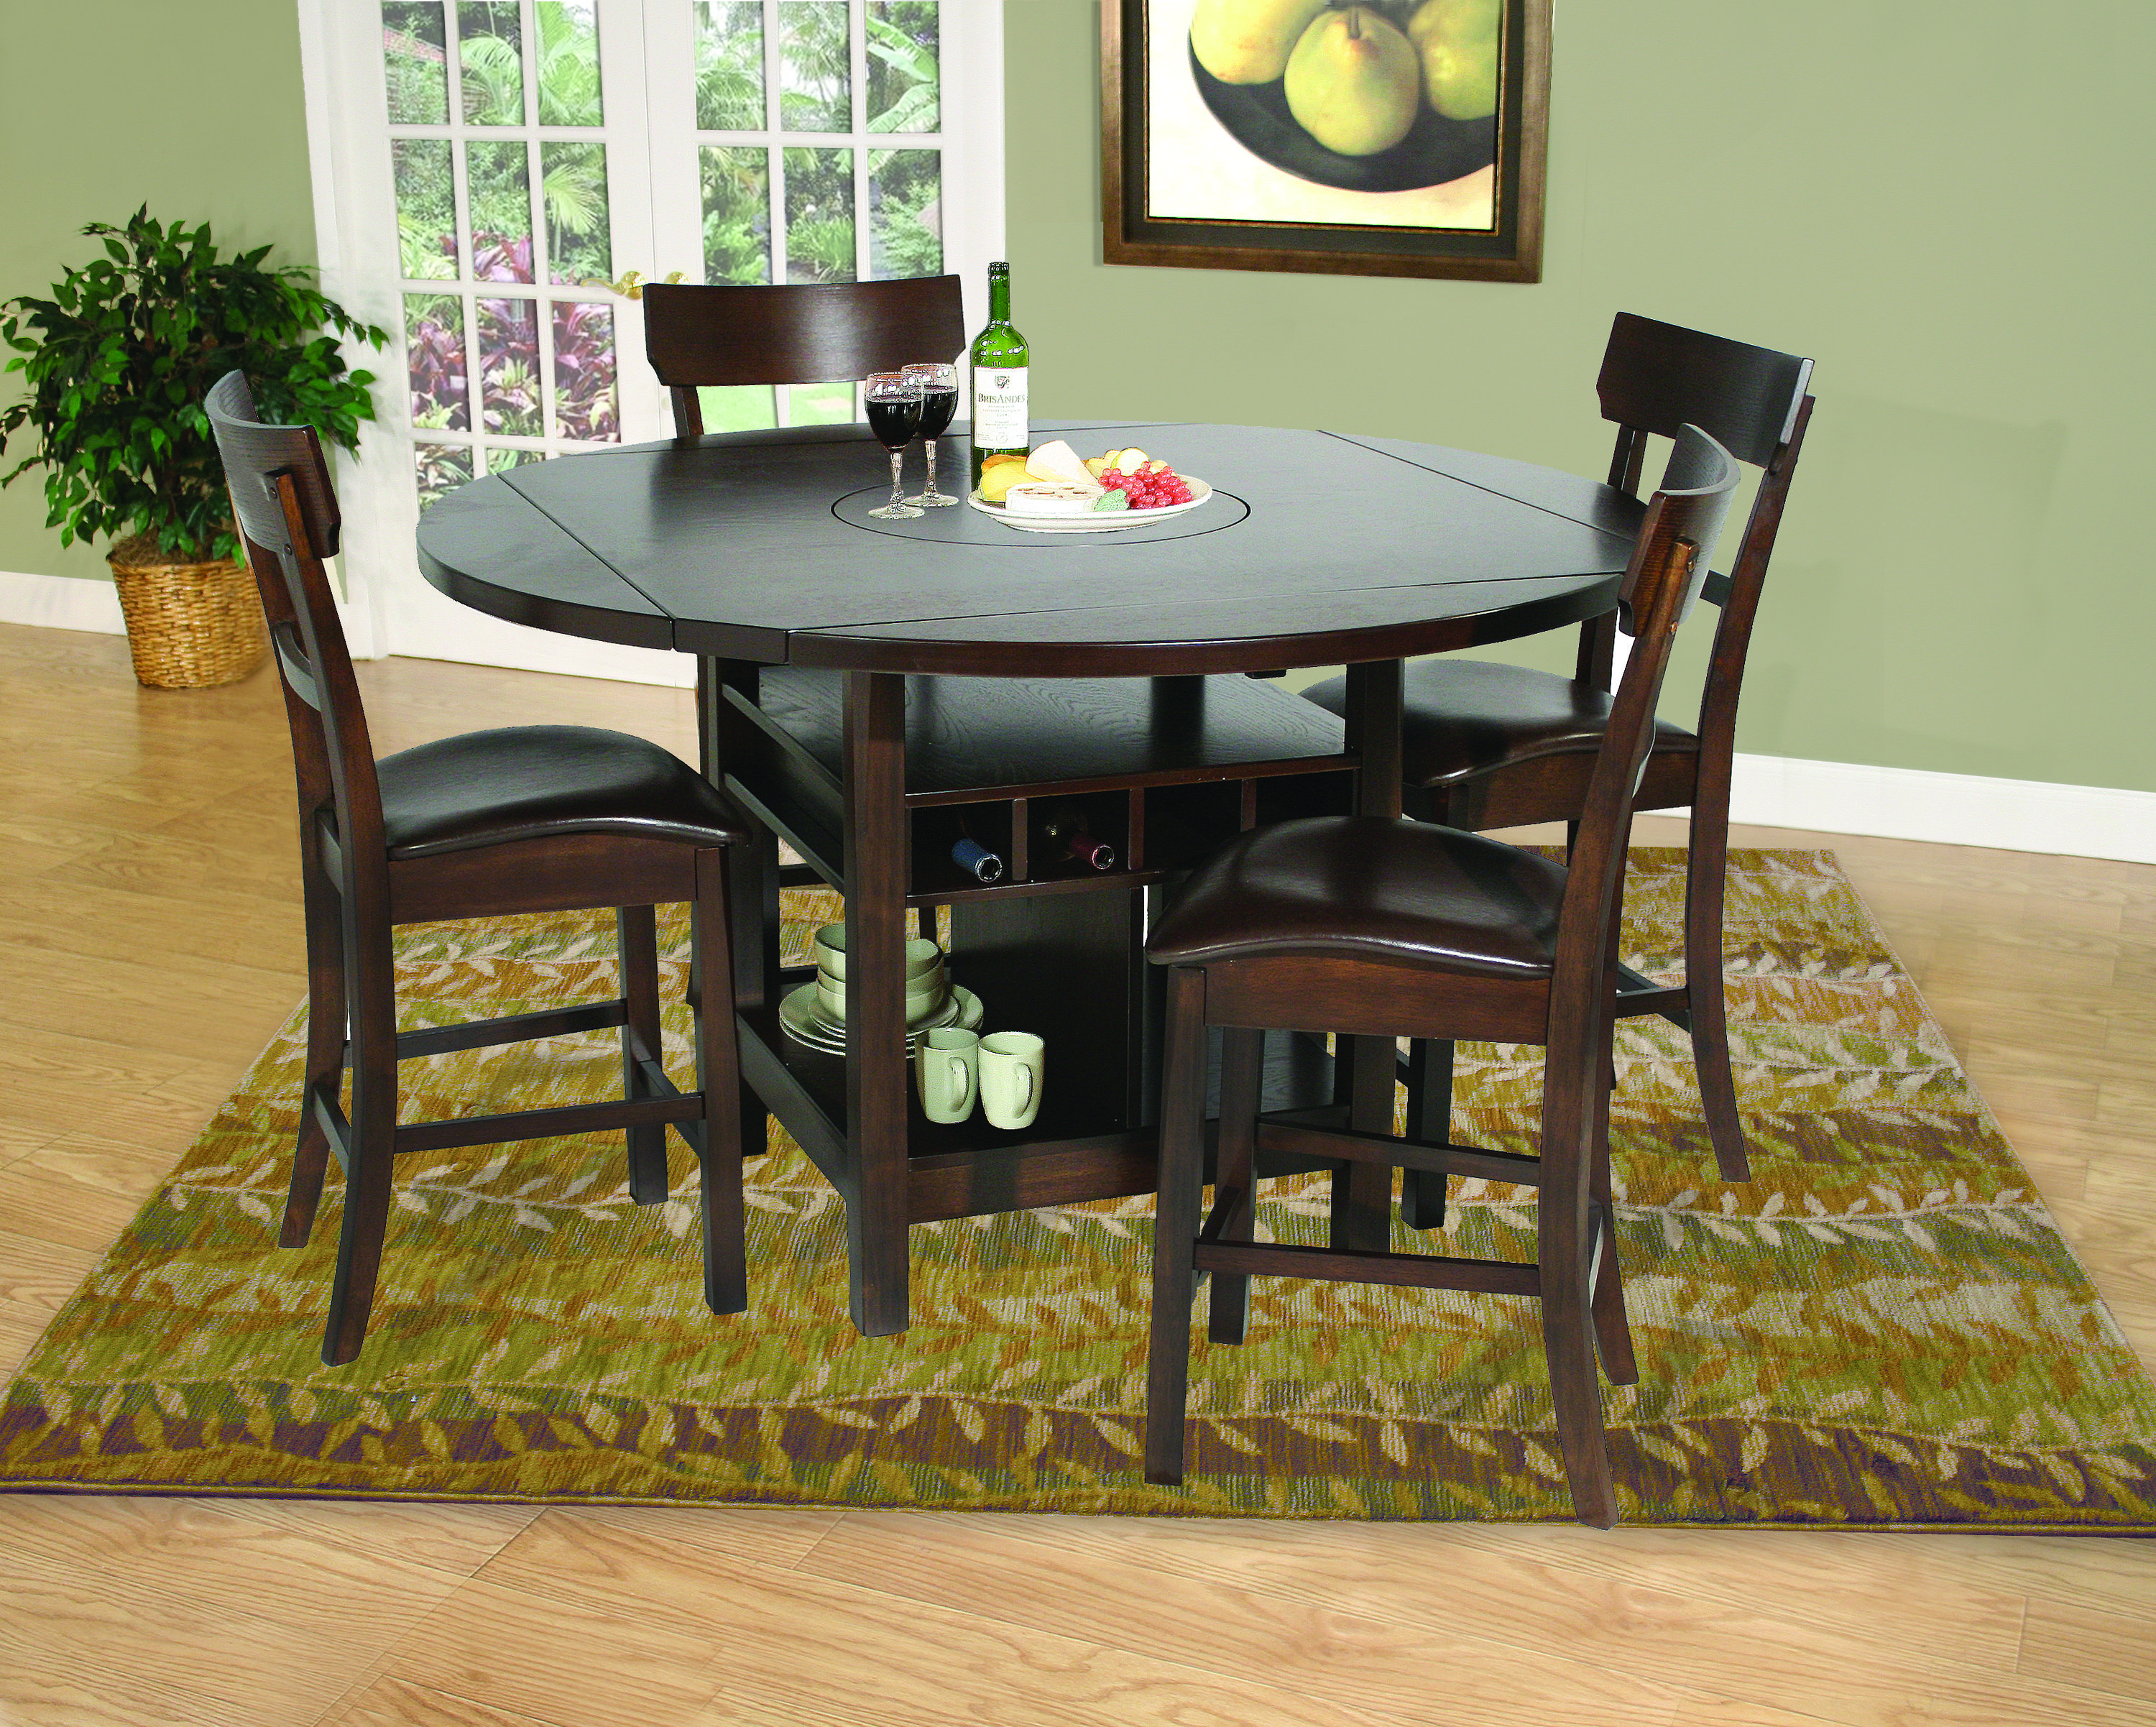 The Samantha Pub Features A Perimeter Drop Leaf Table Top With A Built In  Lazy Susan. Design Inspirations